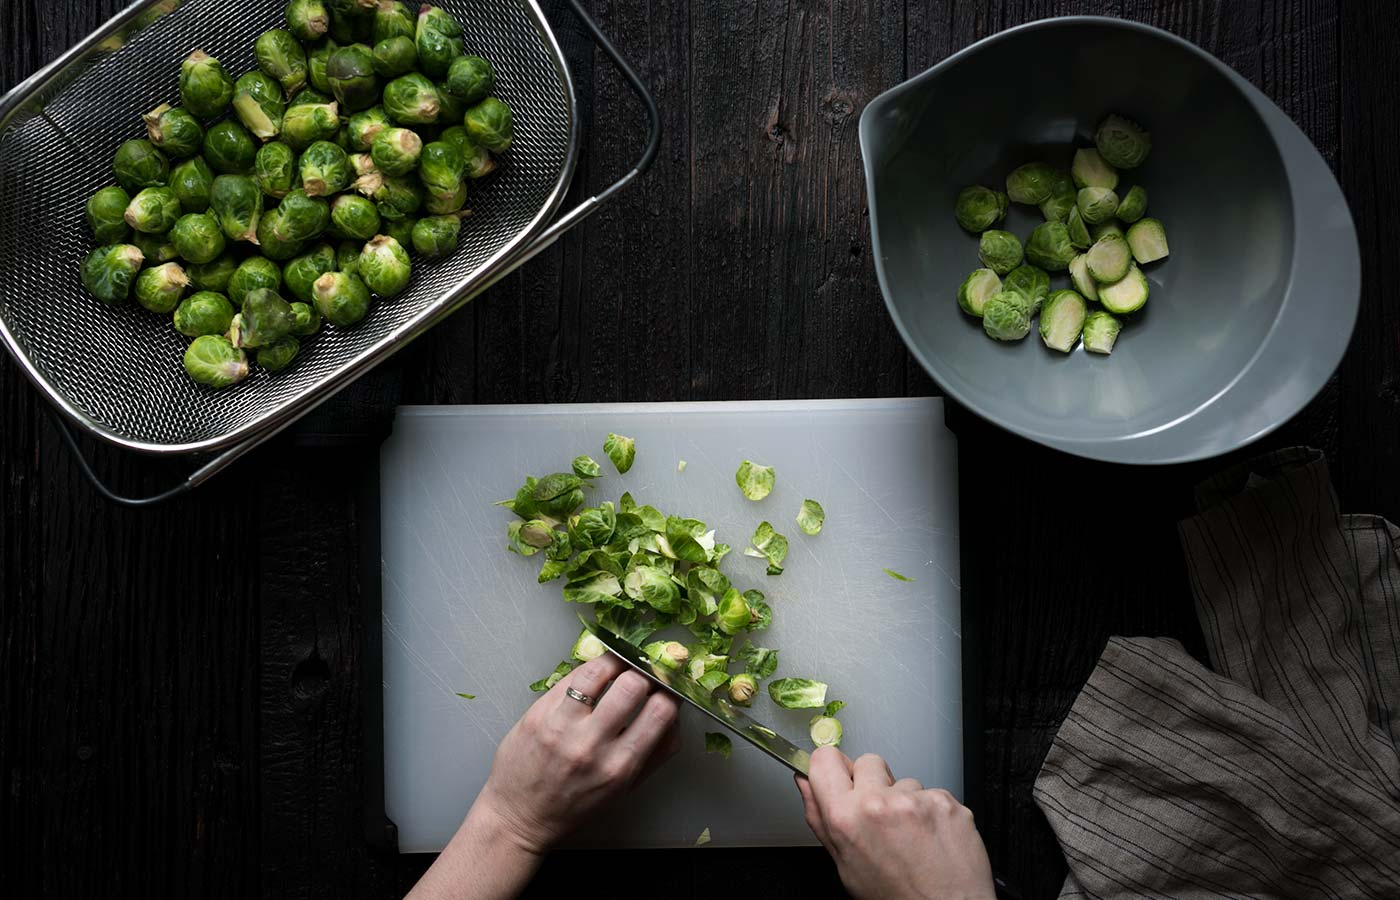 These spicy Kung Pao Brussels Sprouts are a tasty, vegetarian twist on a classic Chinese take-out dish. Get the easy-to-follow recipe from SavorySimple.net